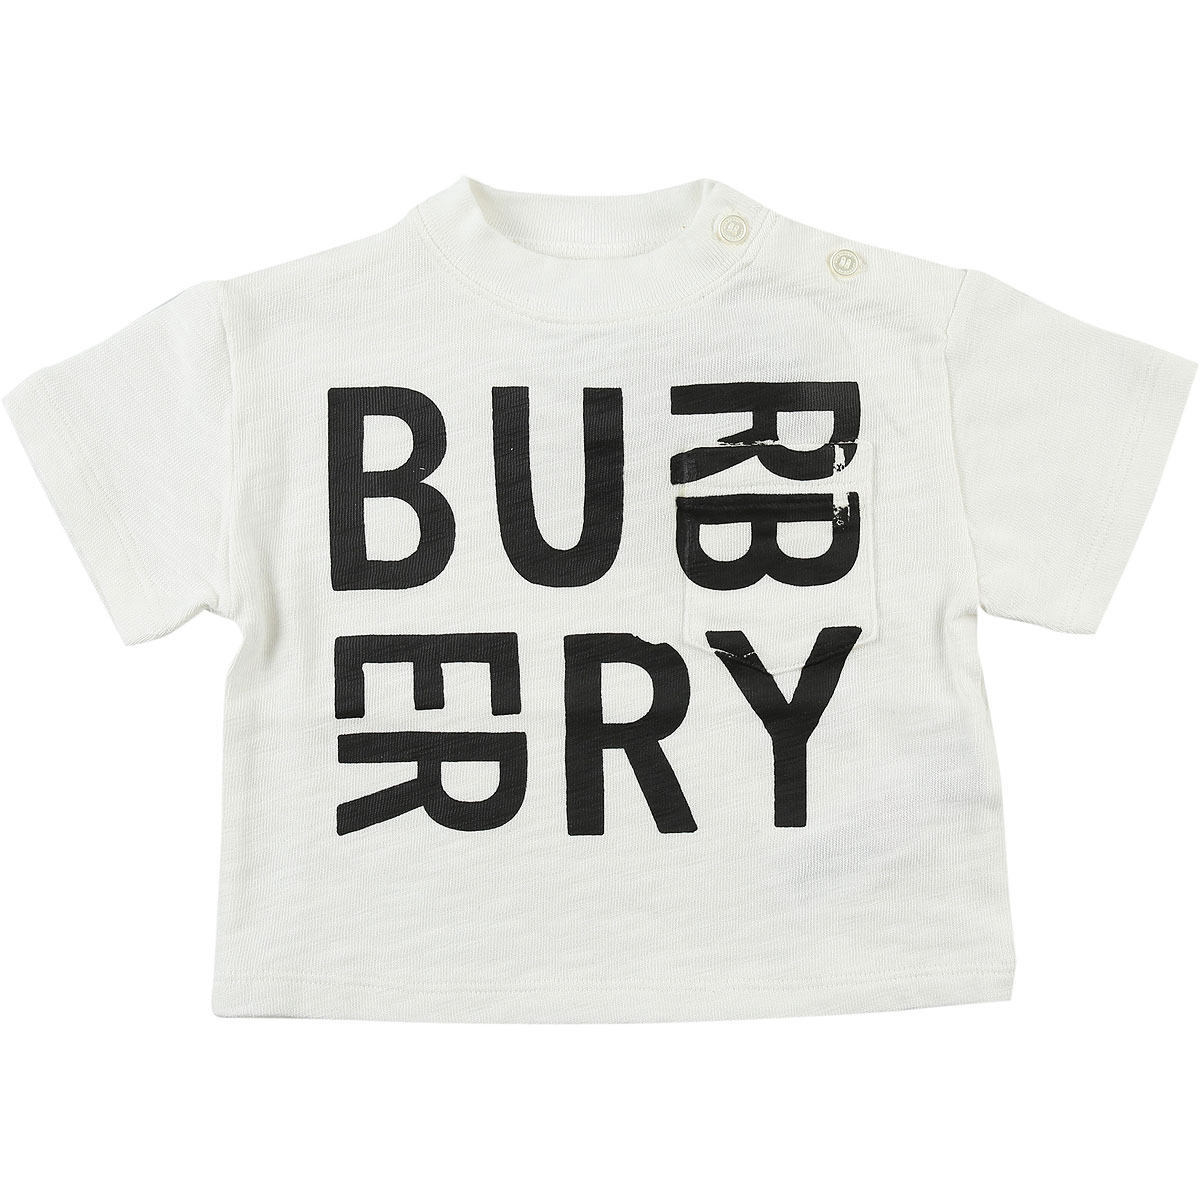 Burberry Baby T-Shirt for Boys On Sale in Outlet, White, Cotton, 2019, 12 M 18M